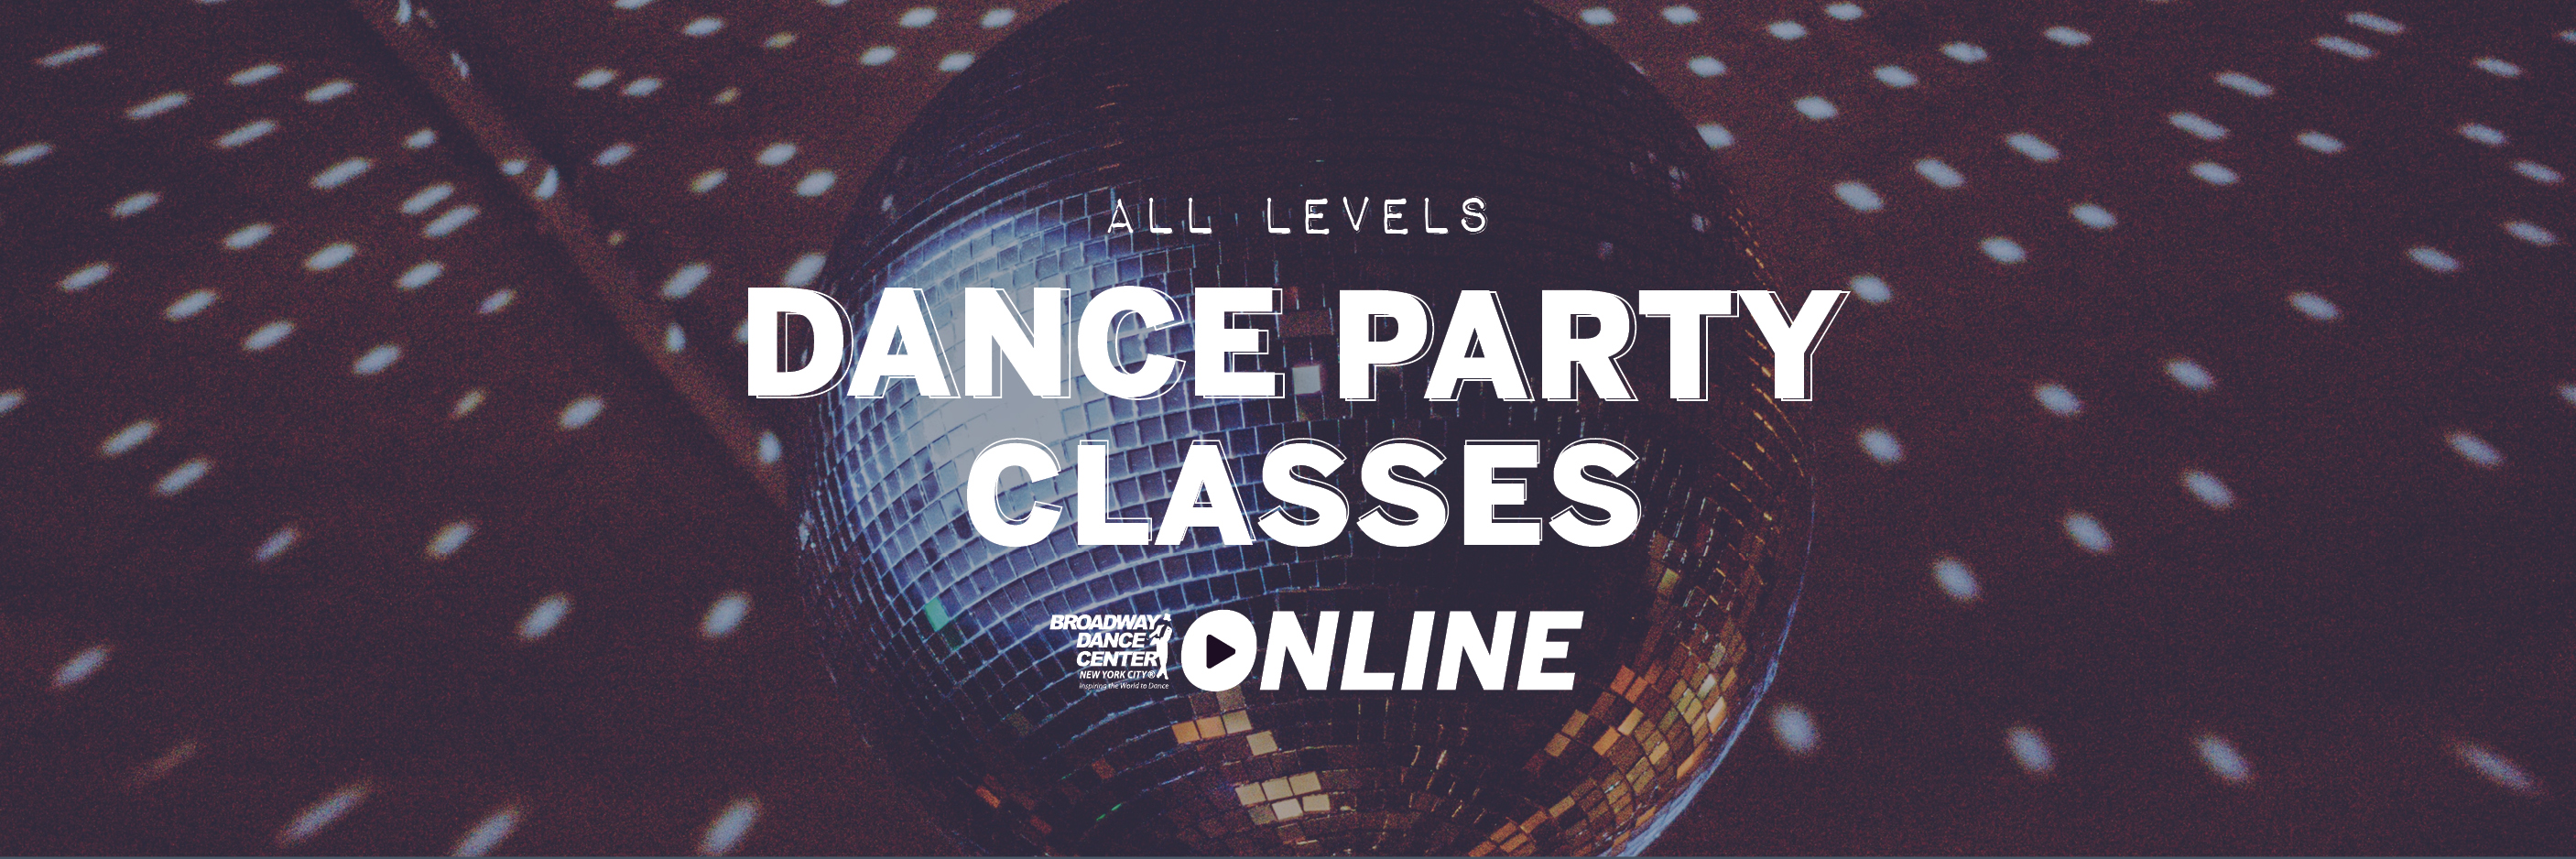 Dance Party Classes